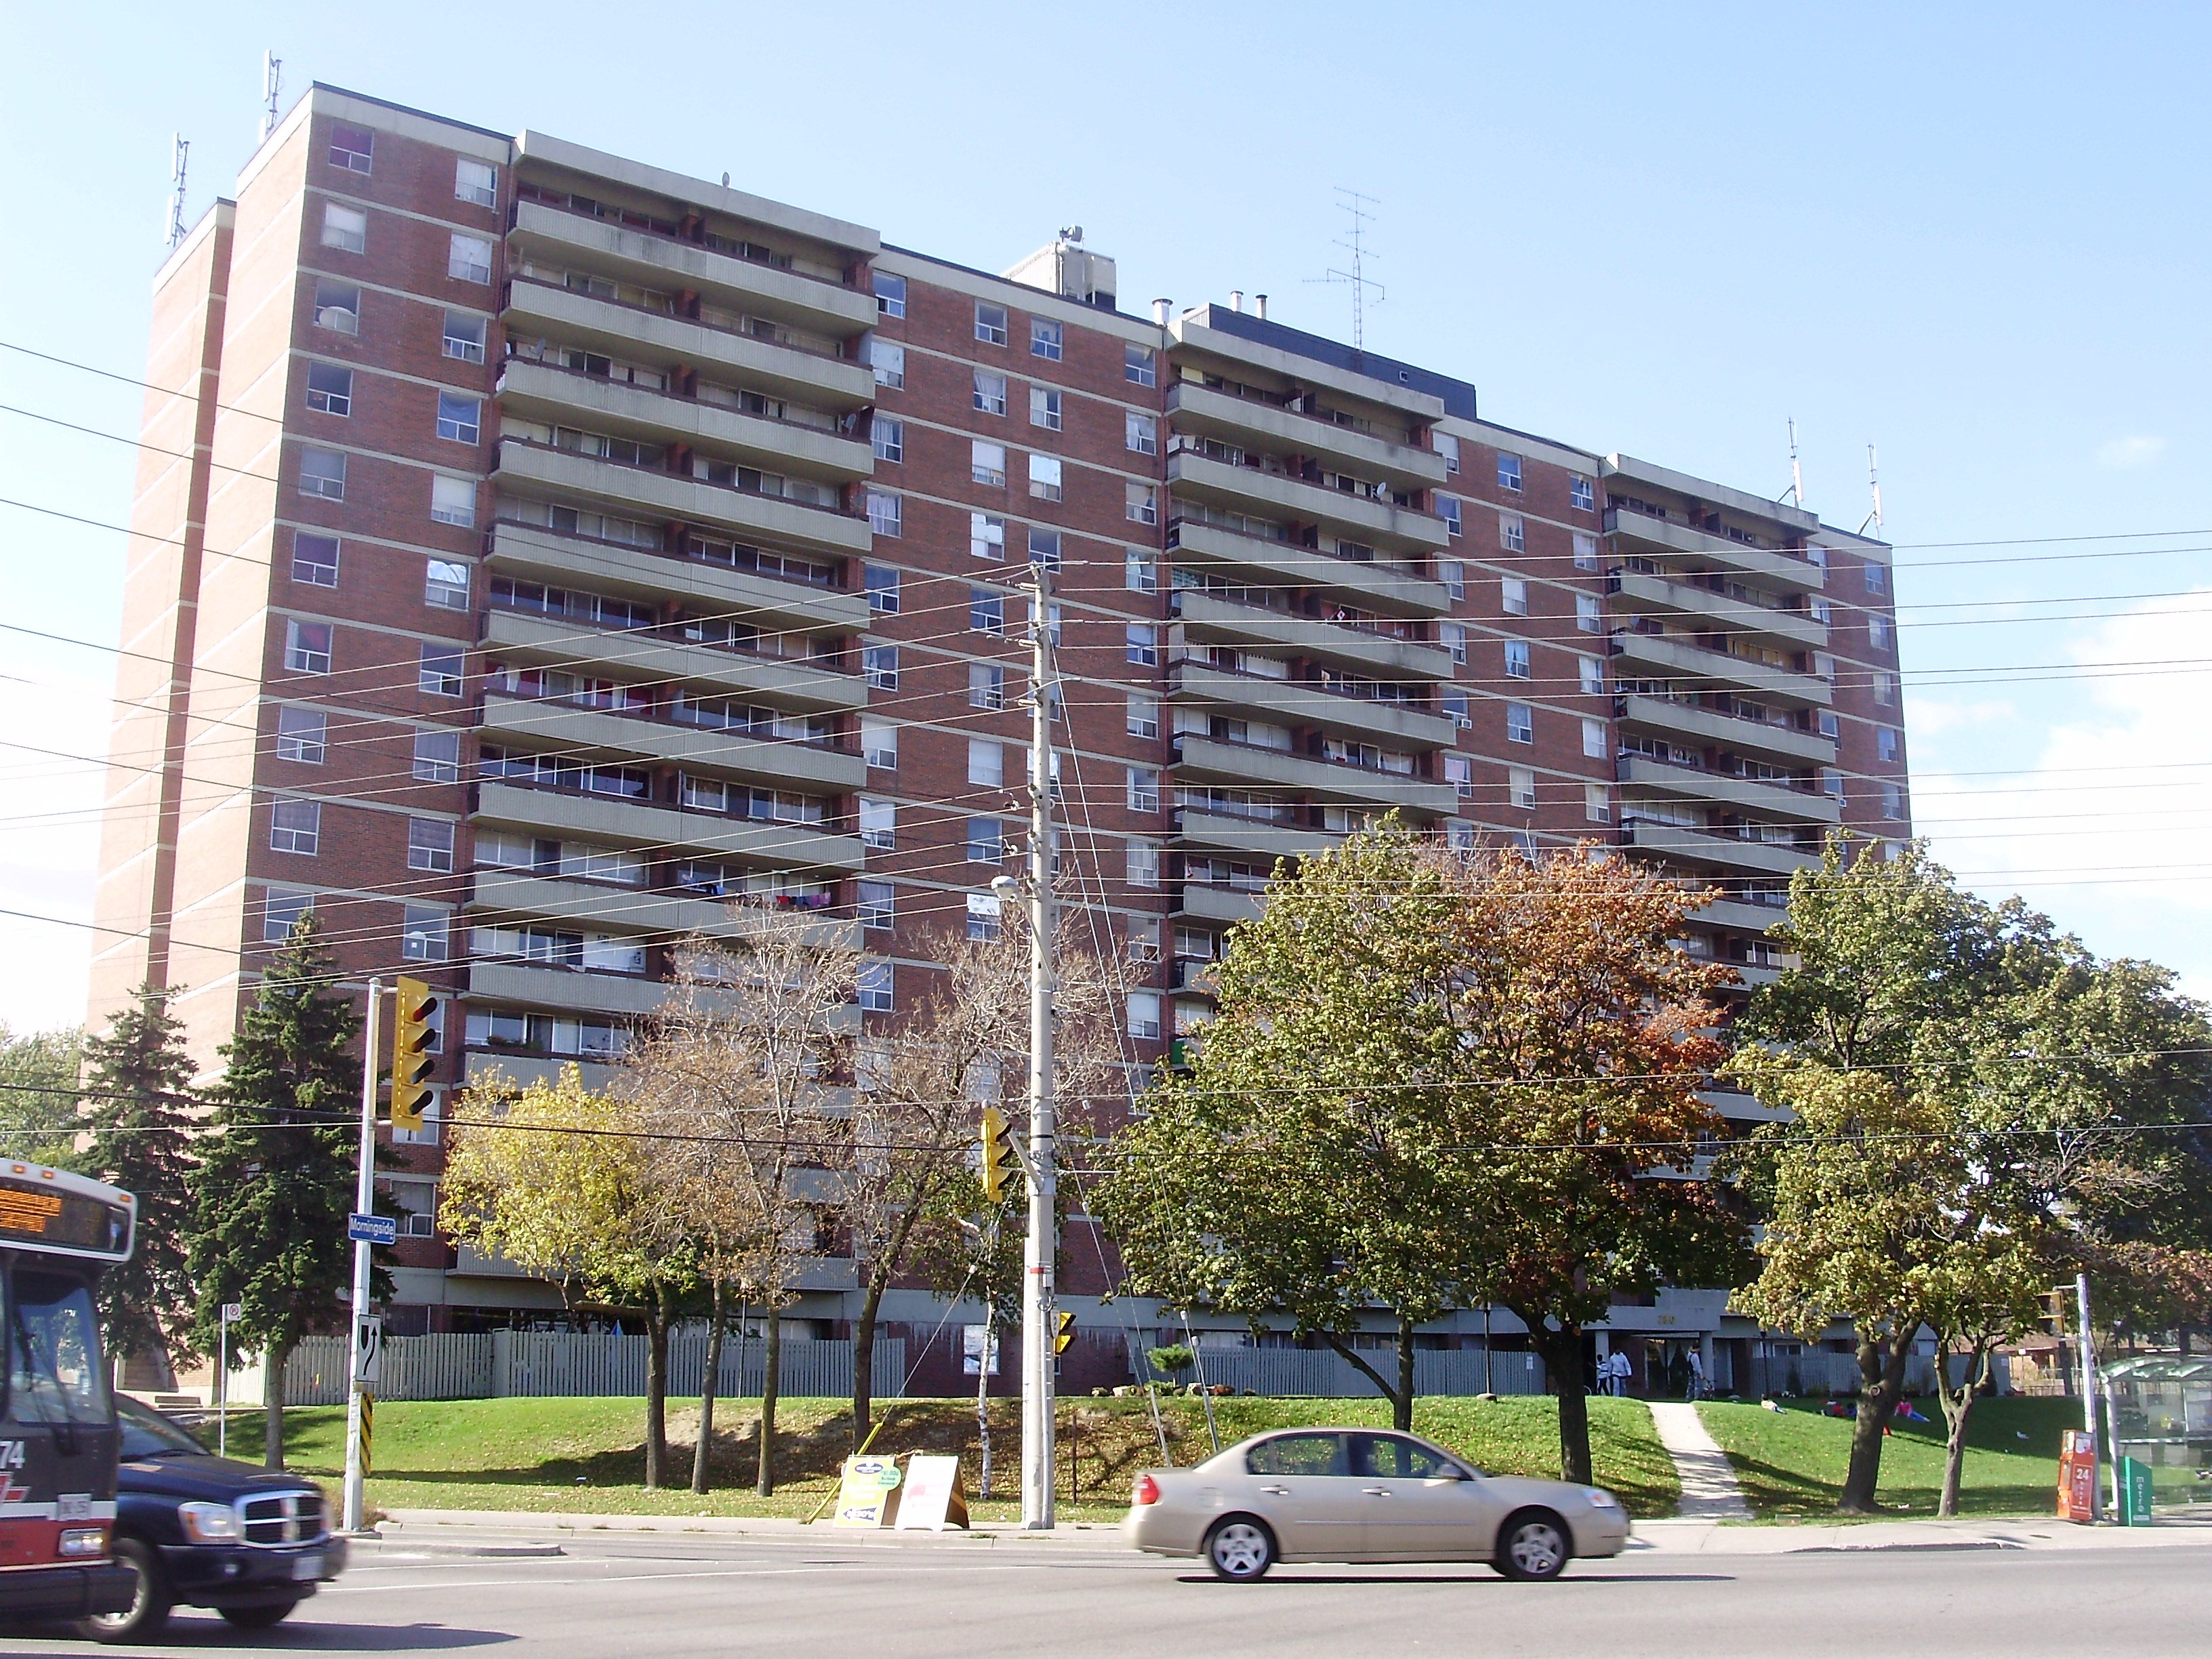 west hill apartments tchc file kingston and morningside apartments west hill scarborough jpg wikimedia commons